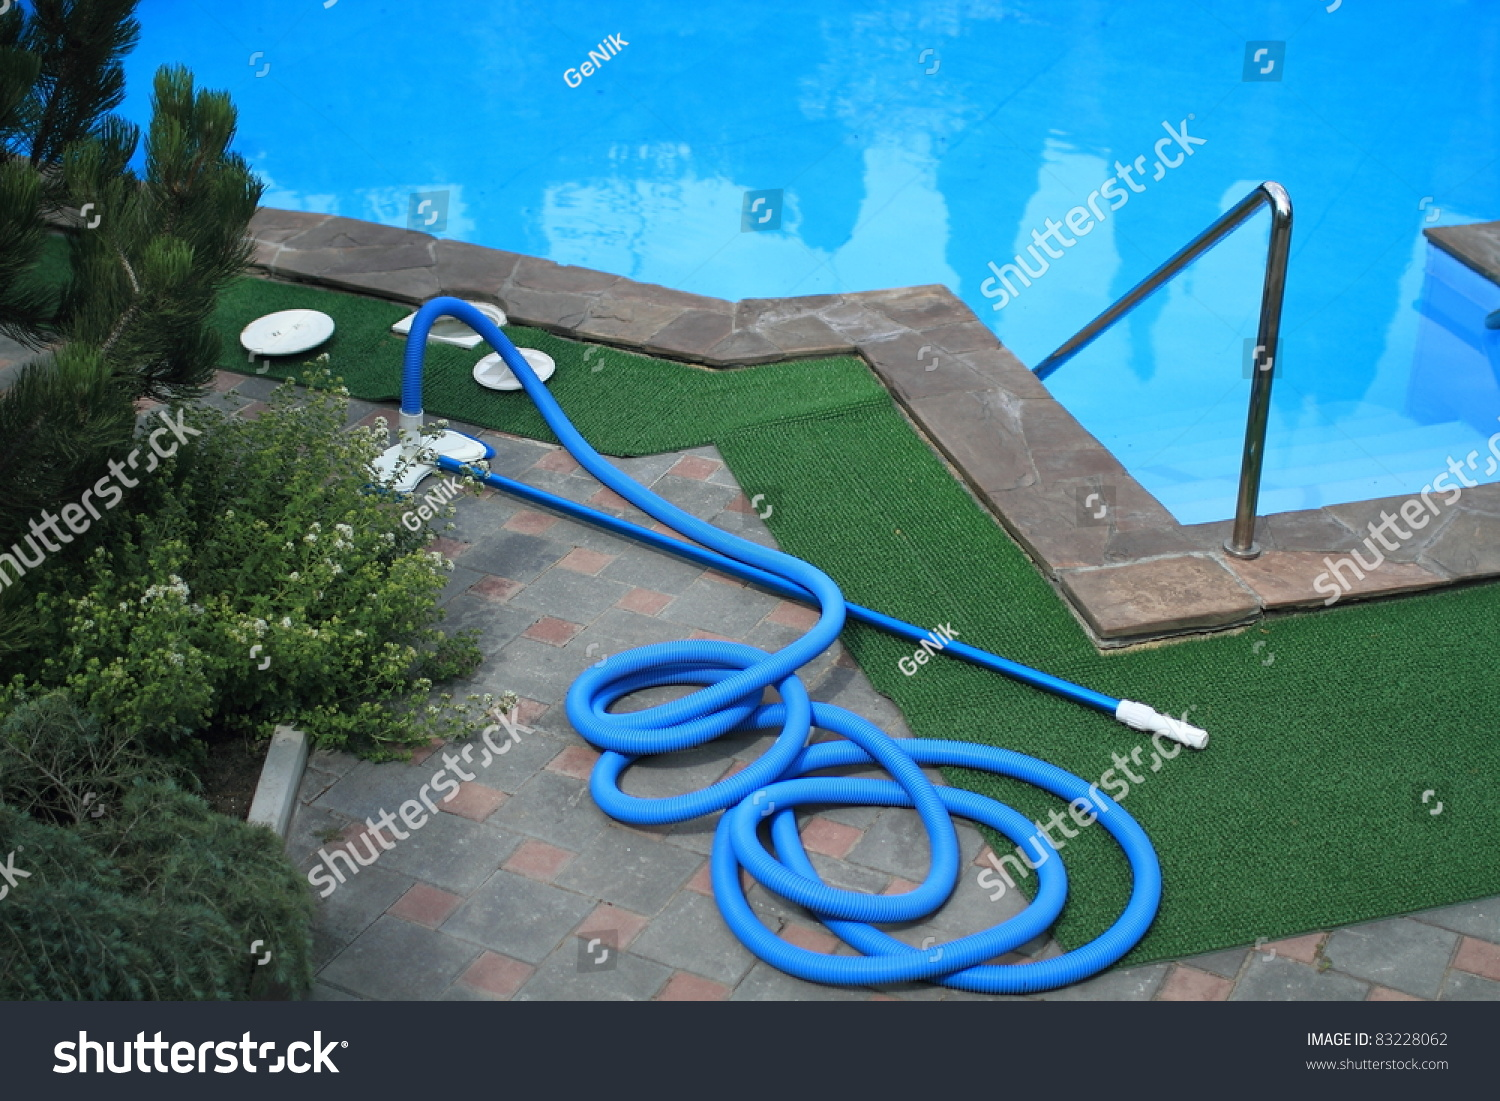 Swimming Pool Cleaning Equipment Stock Photo 83228062